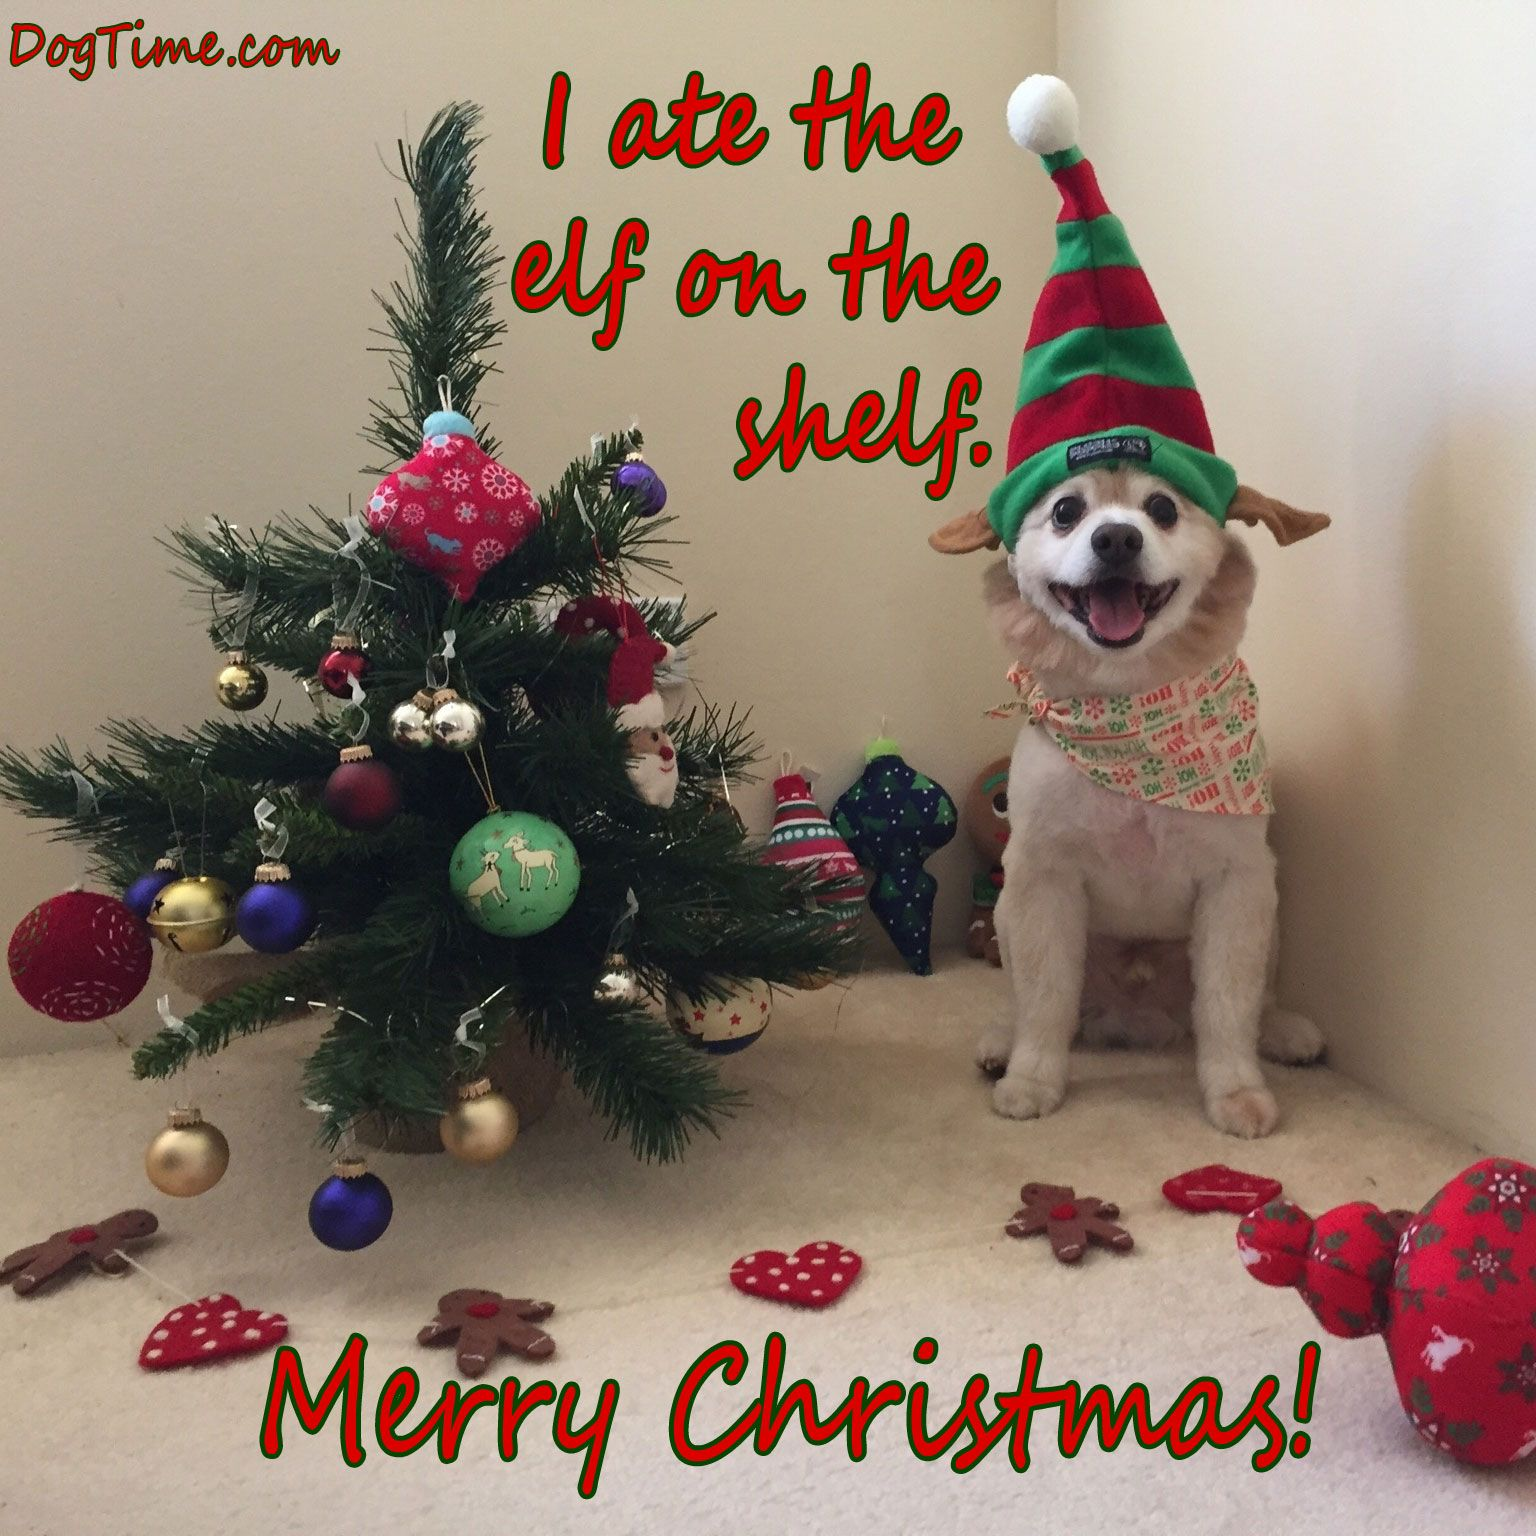 30 Dog Christmas E Cards To Share With Your Friends And Family